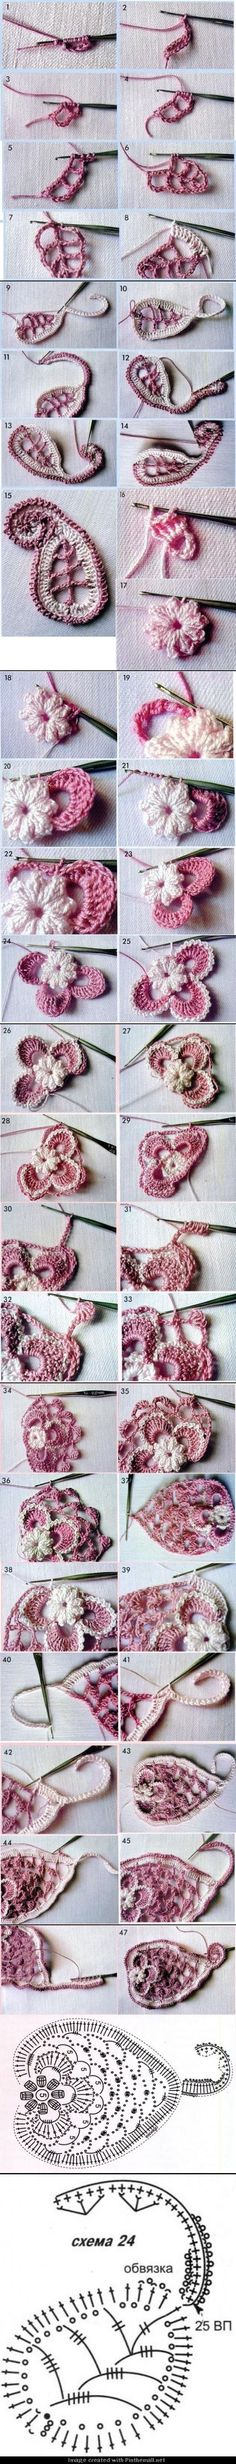 More divine irish crochet lace Irish Crochet Tutorial, Irish Crochet Patterns, Crochet Motifs, Crochet Diagram, Freeform Crochet, Crochet Stitches, Lace Patterns, Knitting Patterns, Crochet Shawl